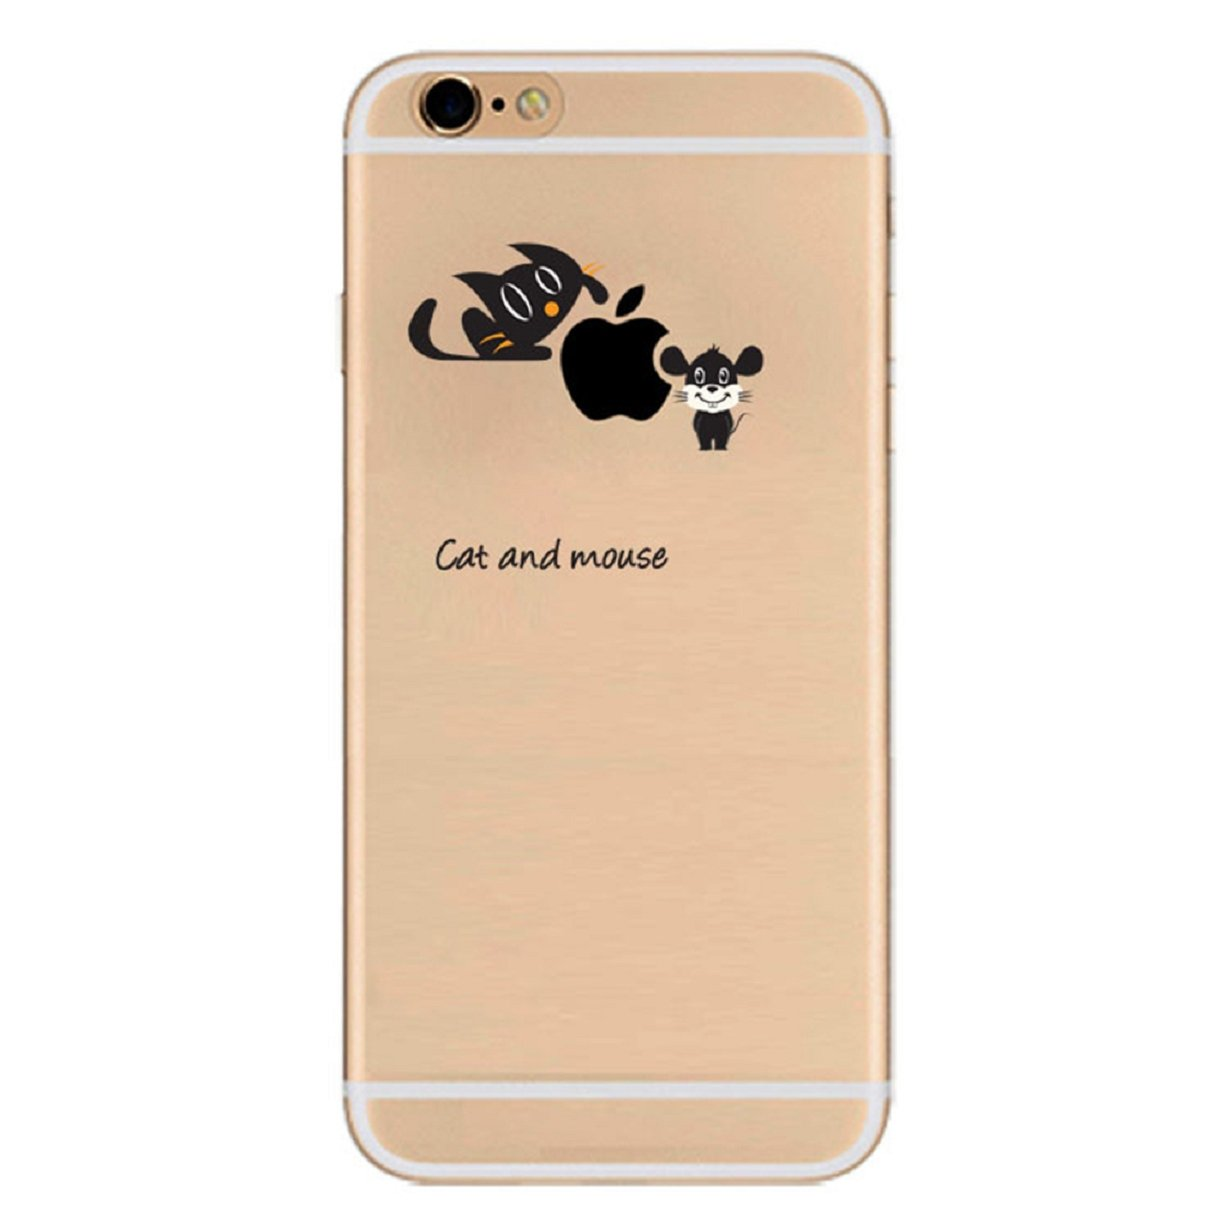 iPhone 6 Case, iPhone 6S Case GUARD Dull Polish Cool Shivering Pattern Solid TPU Silicone Gel Back Thin Cover Skin Soft Cartoon Case for iPhone 6 6S 4.7 Inch (Color 7) Axixi